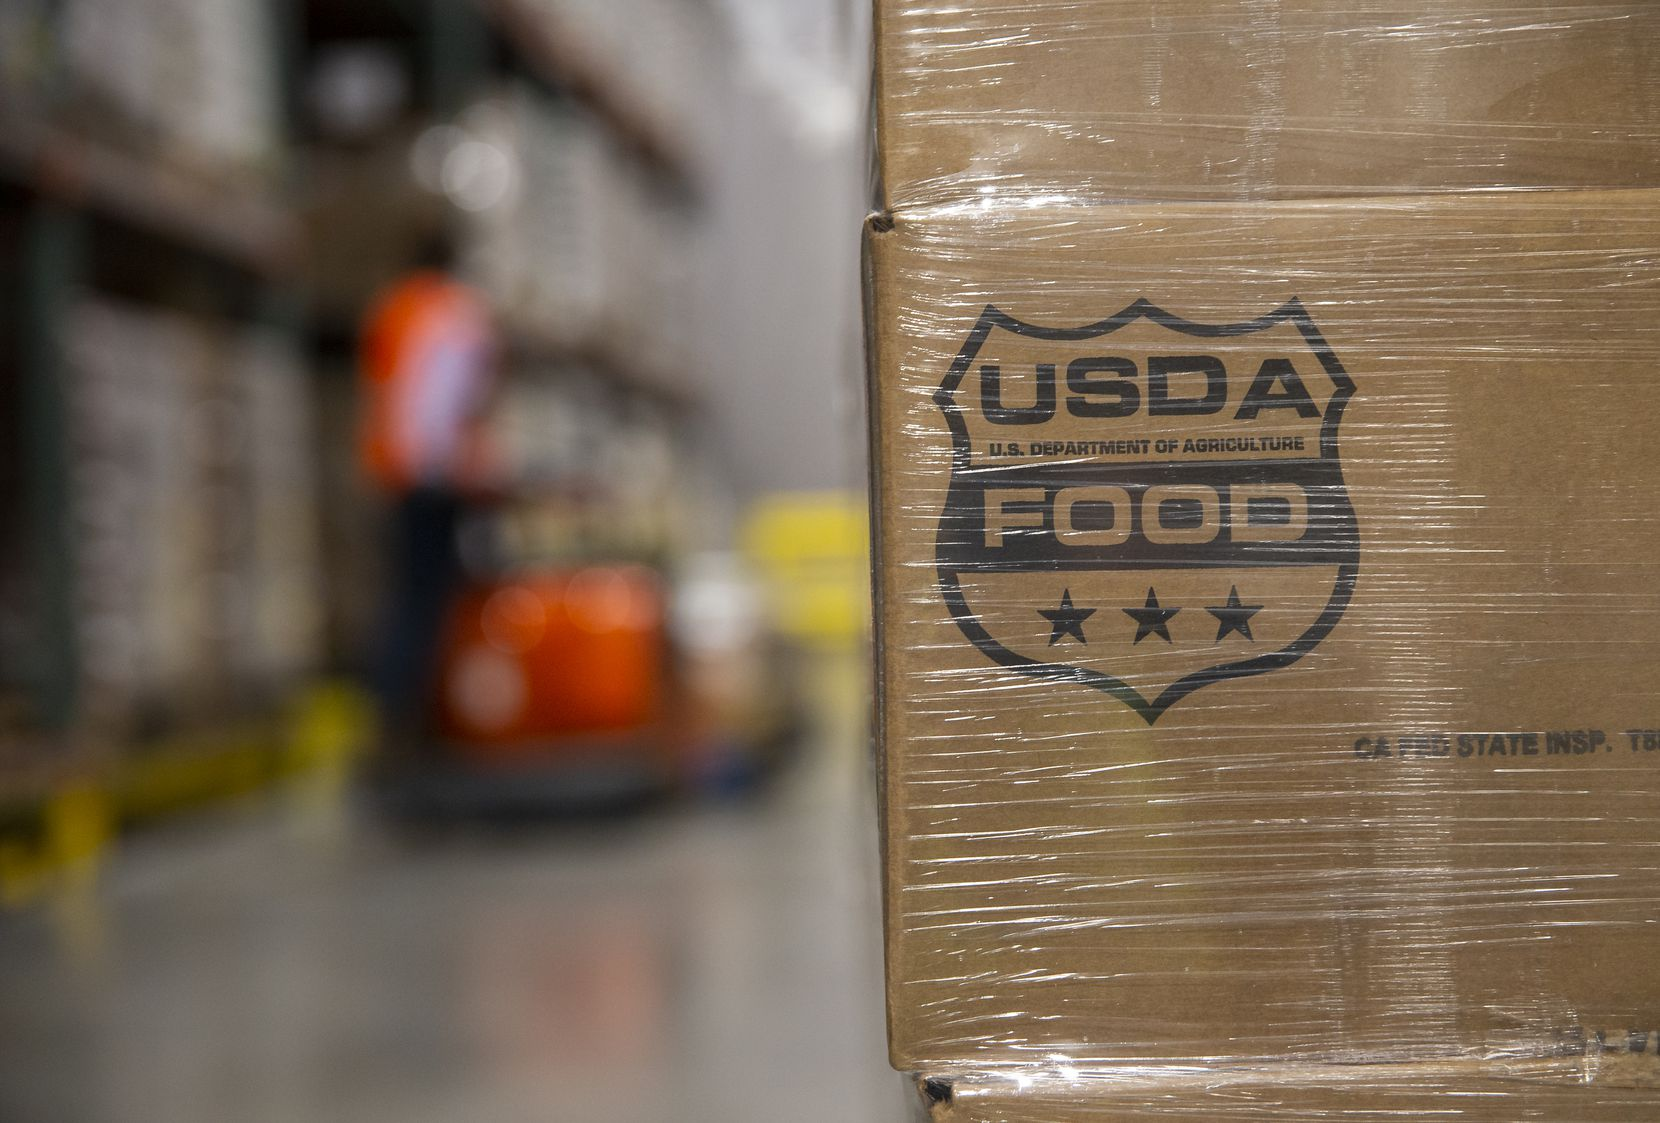 A pallet of English walnuts supplied by the USDA at the North Texas Food Bank on Feb. 6, 2020 in Plano.